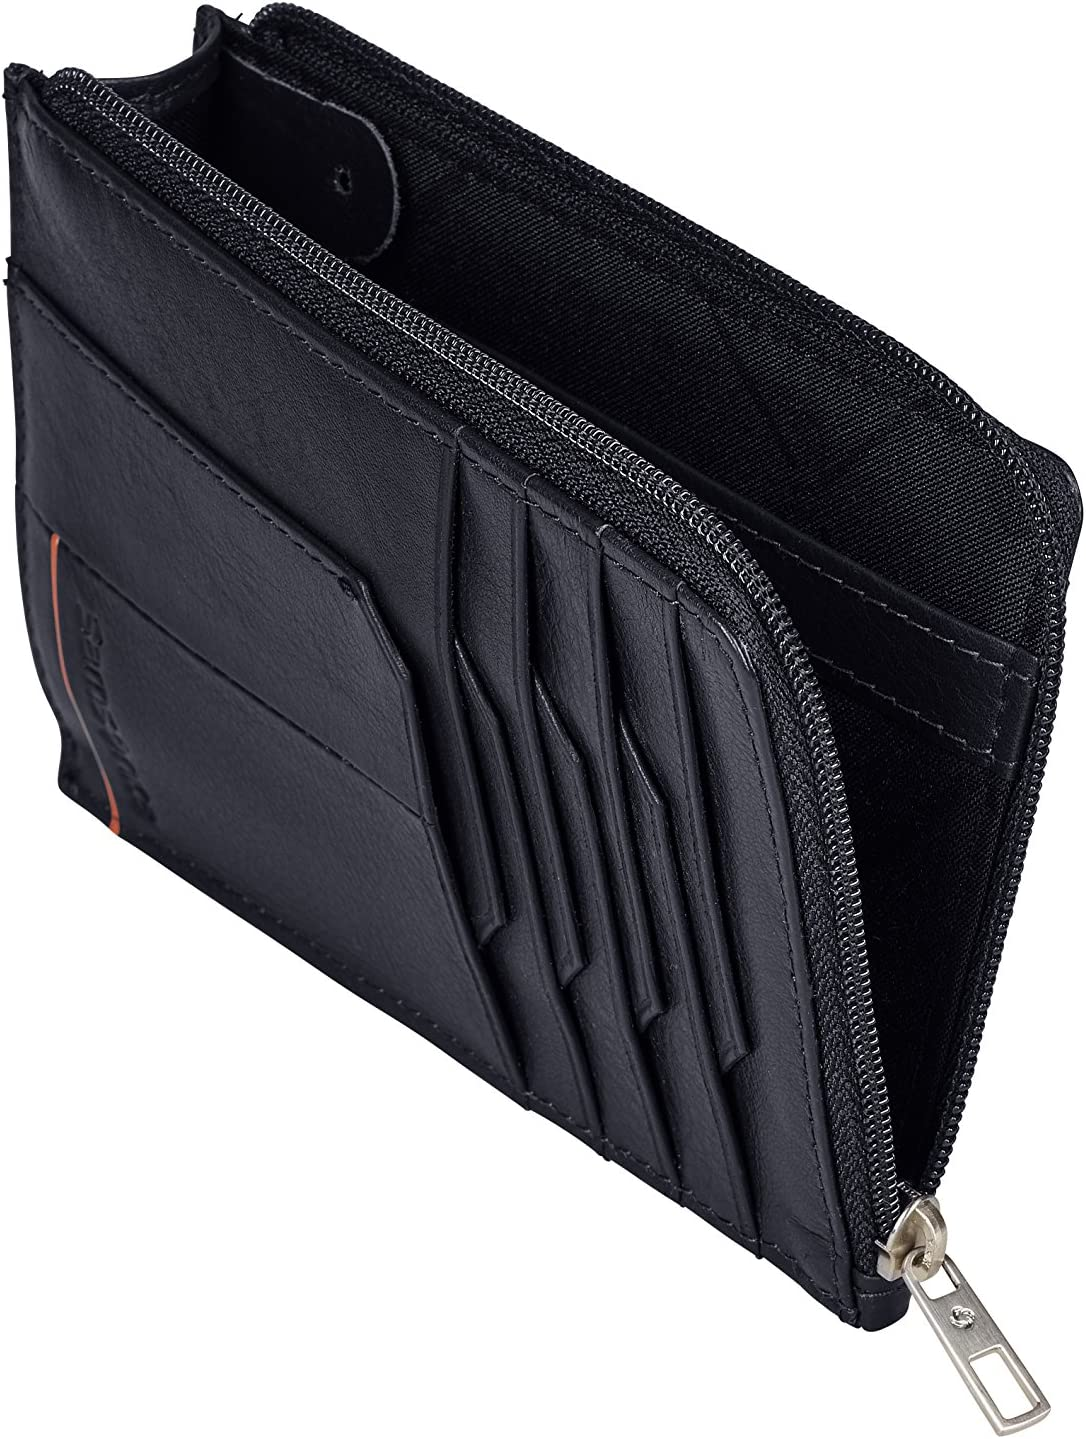 All-in-One Wallet with Zip Around Porte-Carte de cr/édit 13 cm Bleu Night Blue//Chili 0 liters Outline 2 SLG